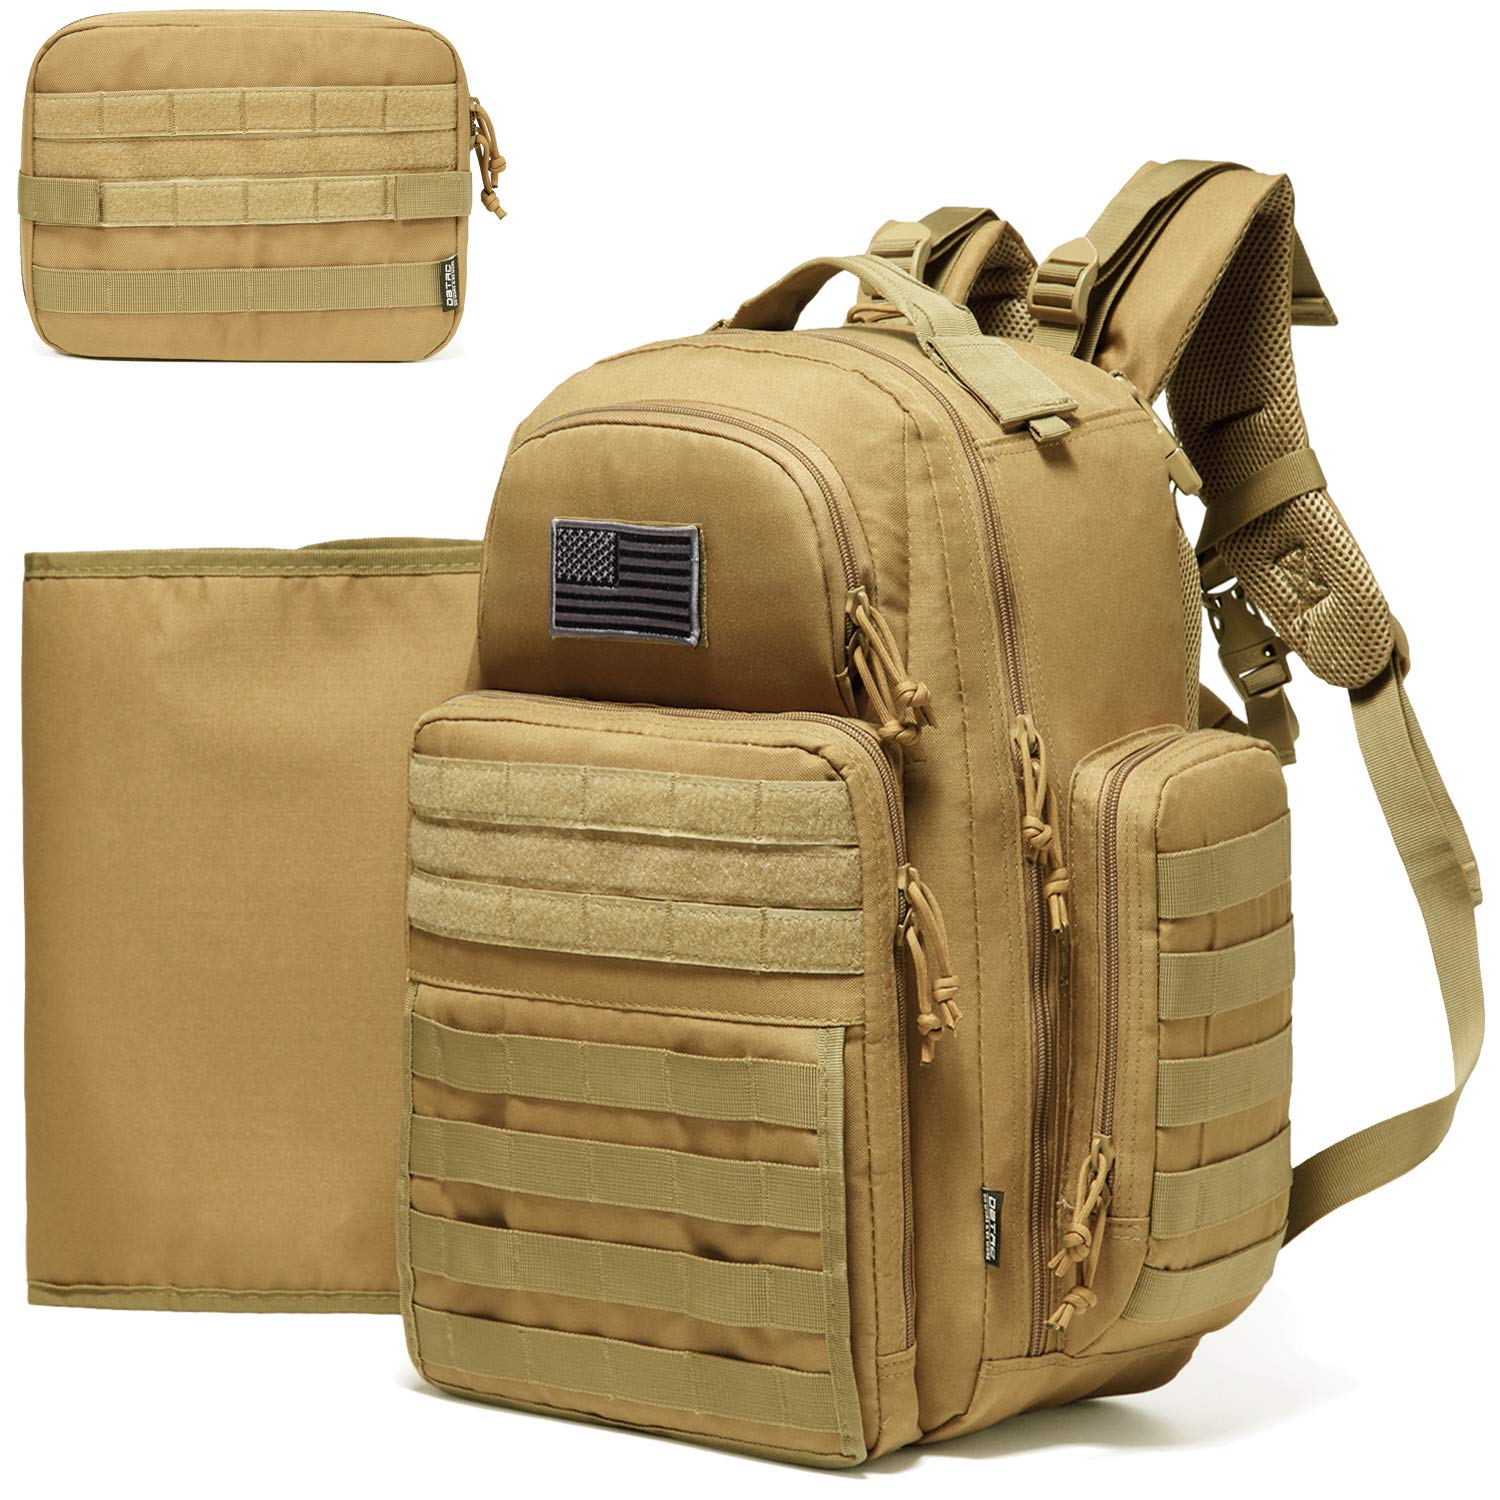 Jungle Brown Dinictis 40l Diaper Bag Backpack for Dad,Tactical Travel Baby Nappy Bags for Men,Baby Accessories for Daddy